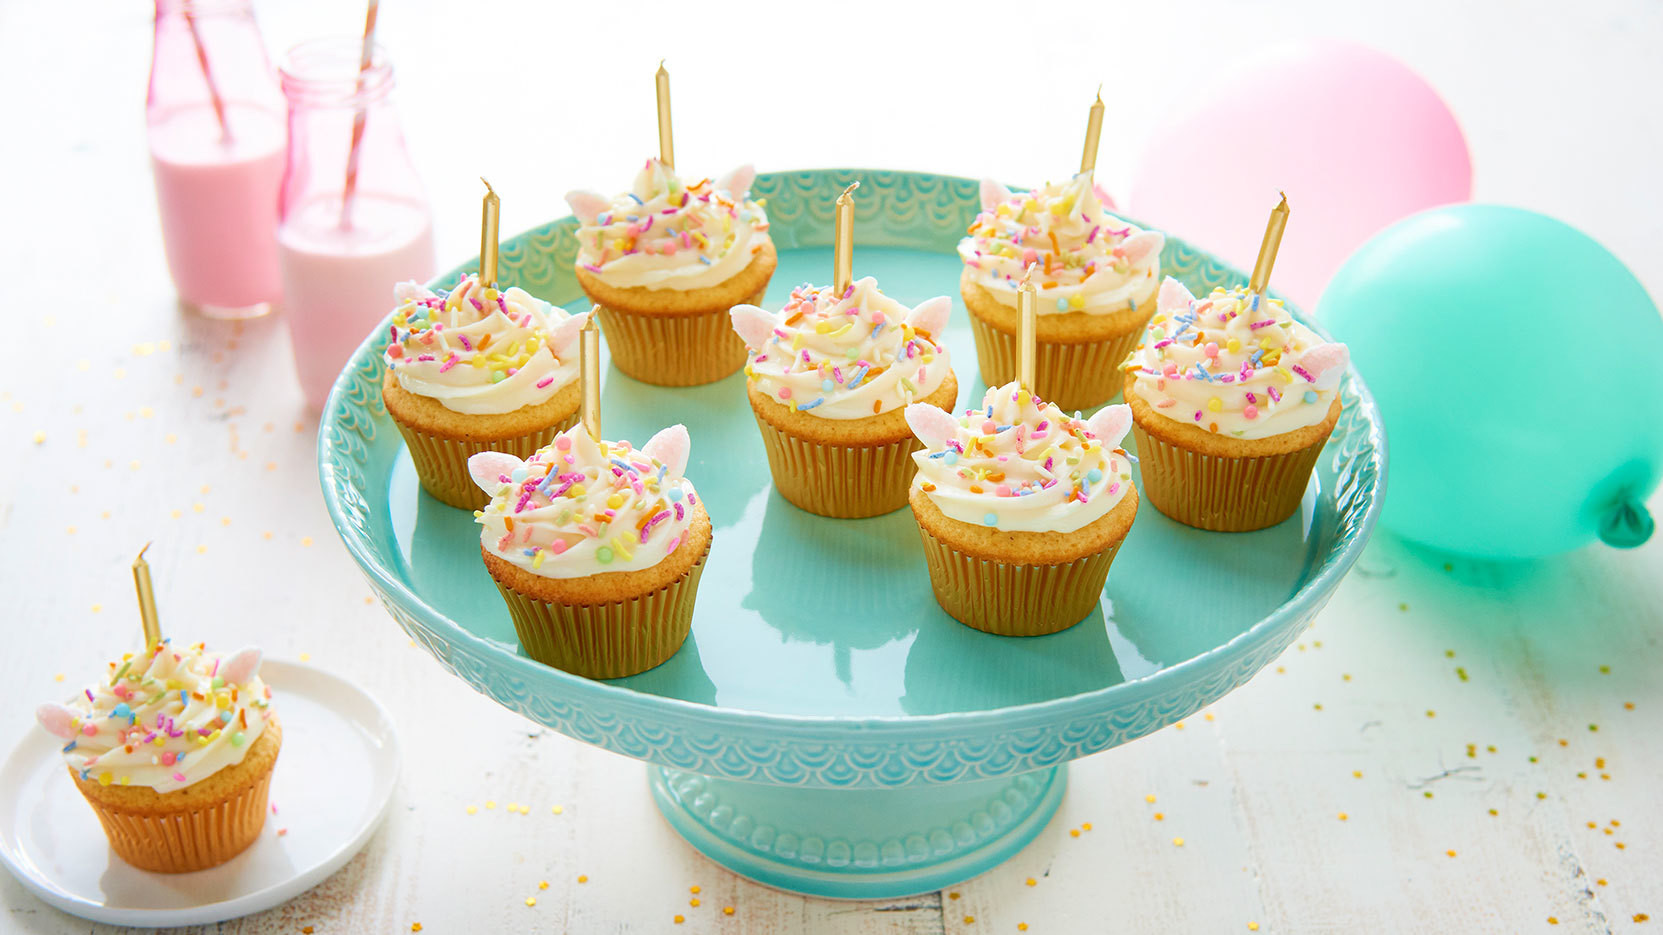 Unicorn Food Ideas For Party  Magical Unicorn Birthday Party Ideas for Kids EatingWell